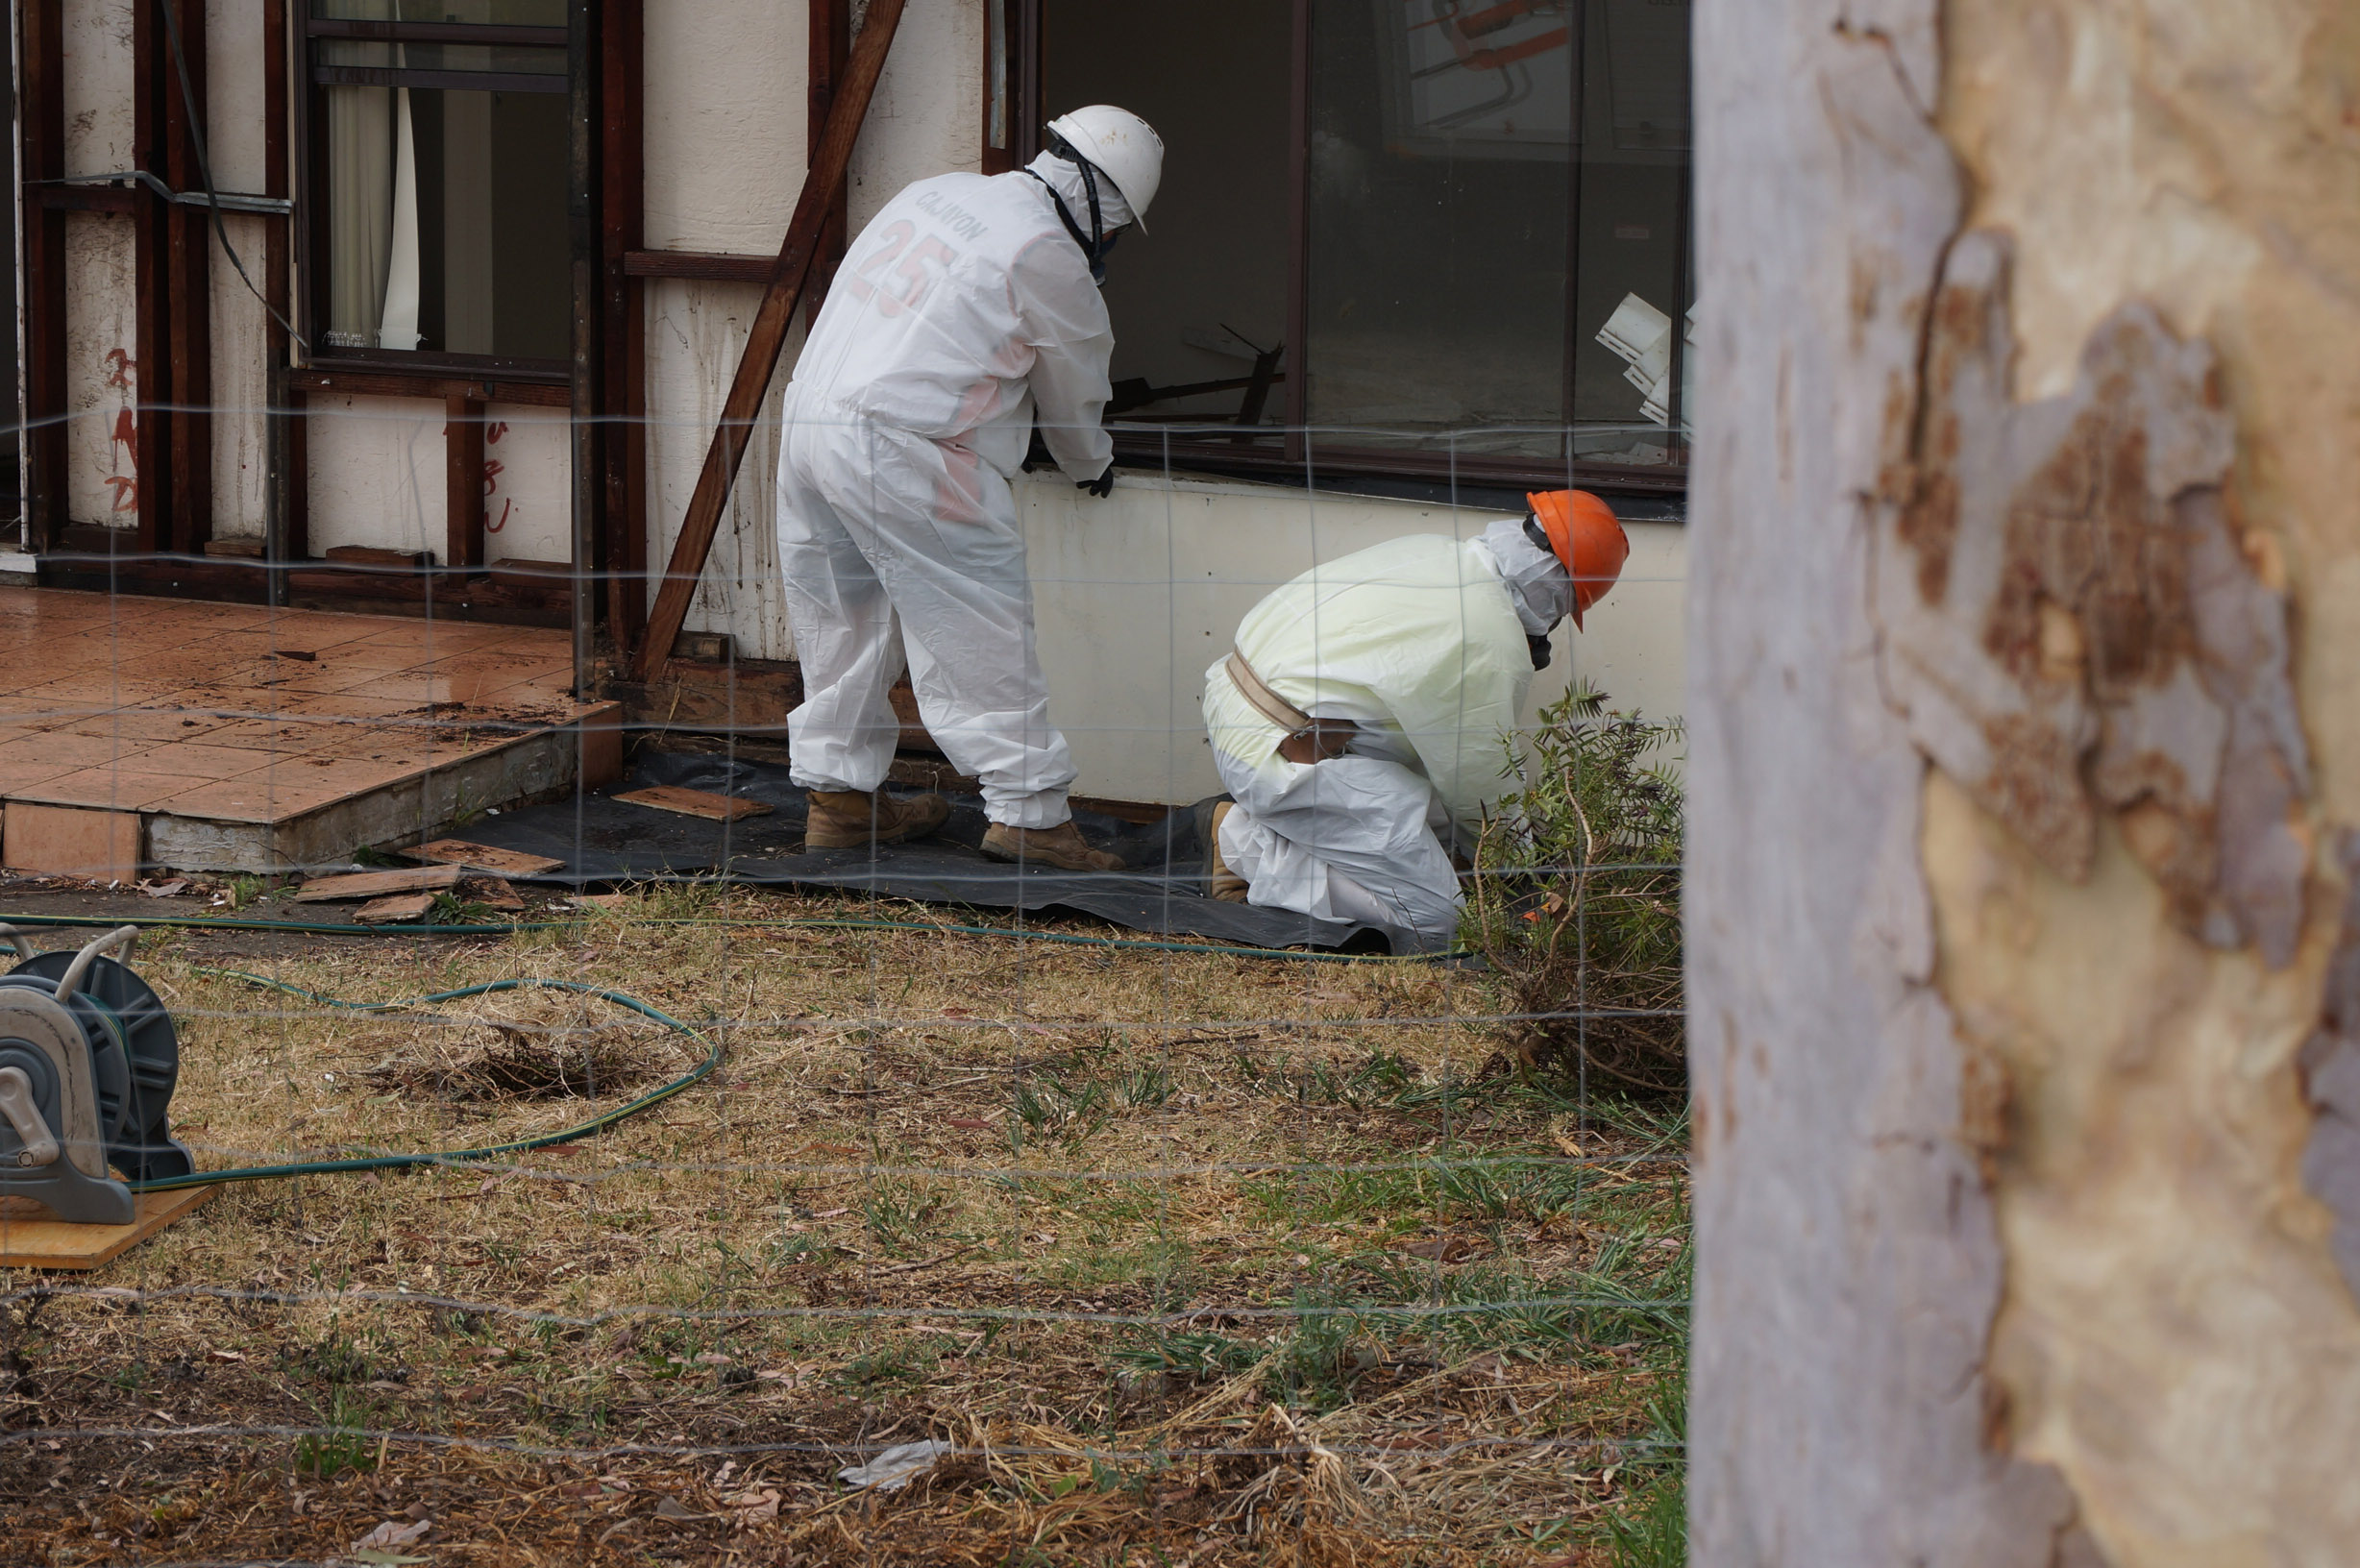 More workers removing asbestos board